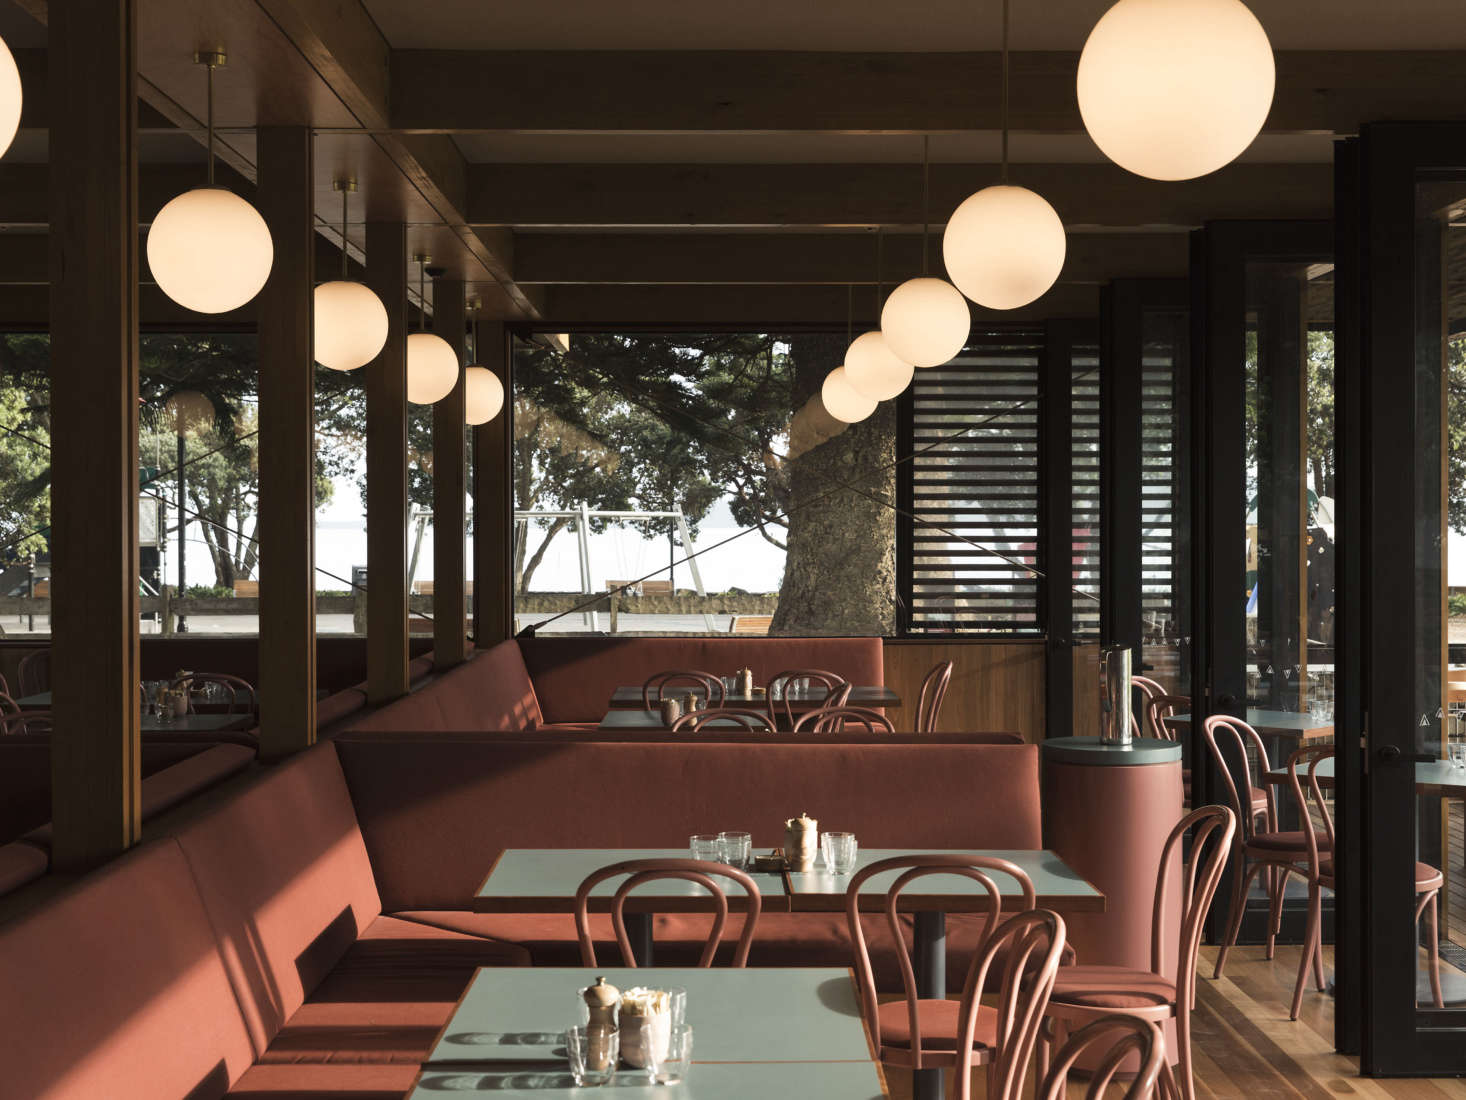 Inside, Lockhart opted for durable surfaces (Mission Bay is Auckland's busiest beach) like painted wood, powder-coated steel, laminate, and Sunbrella fabric. The banquettes are upholstered inTresco Brick Sunbrella Fabric.